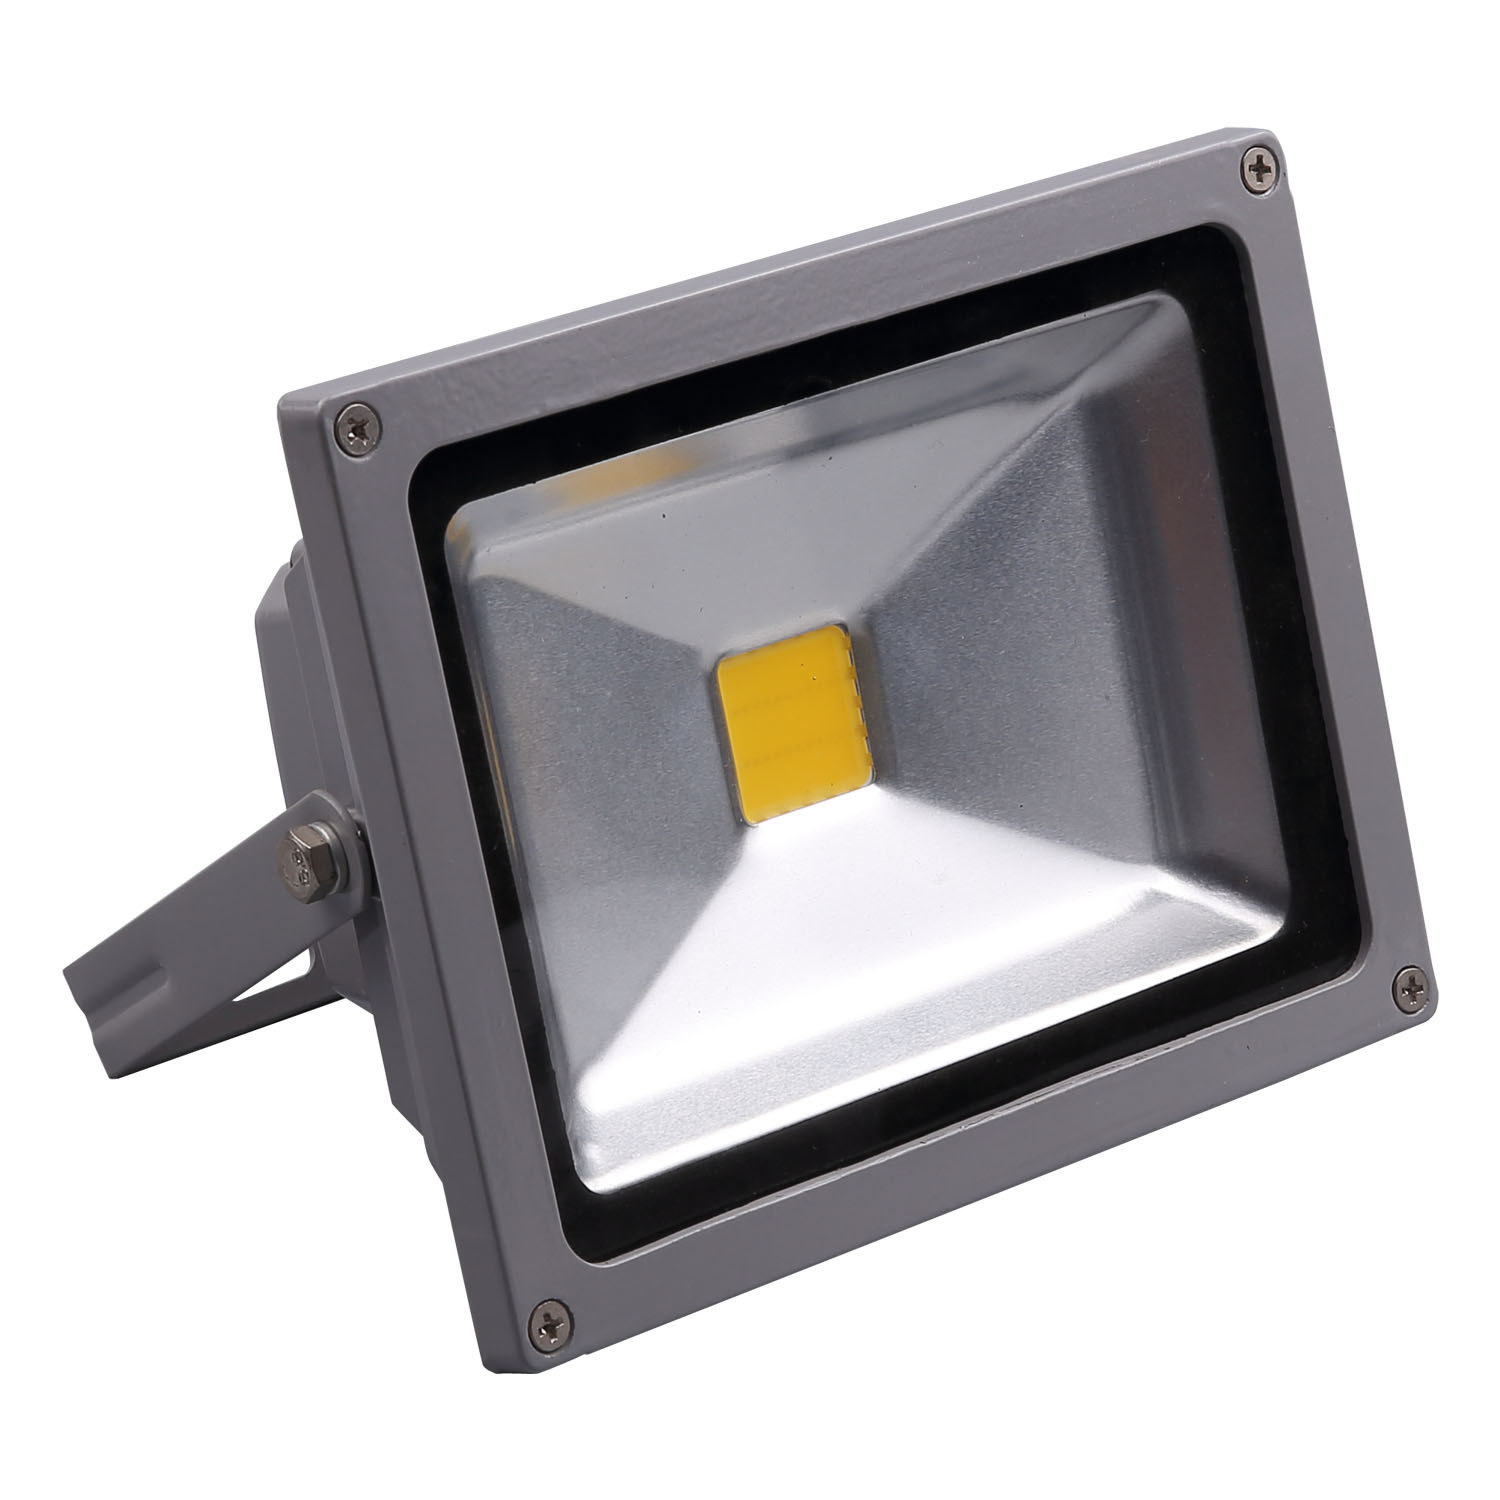 Power IP65 Waterproof Outdoor 50W LED Flood Light